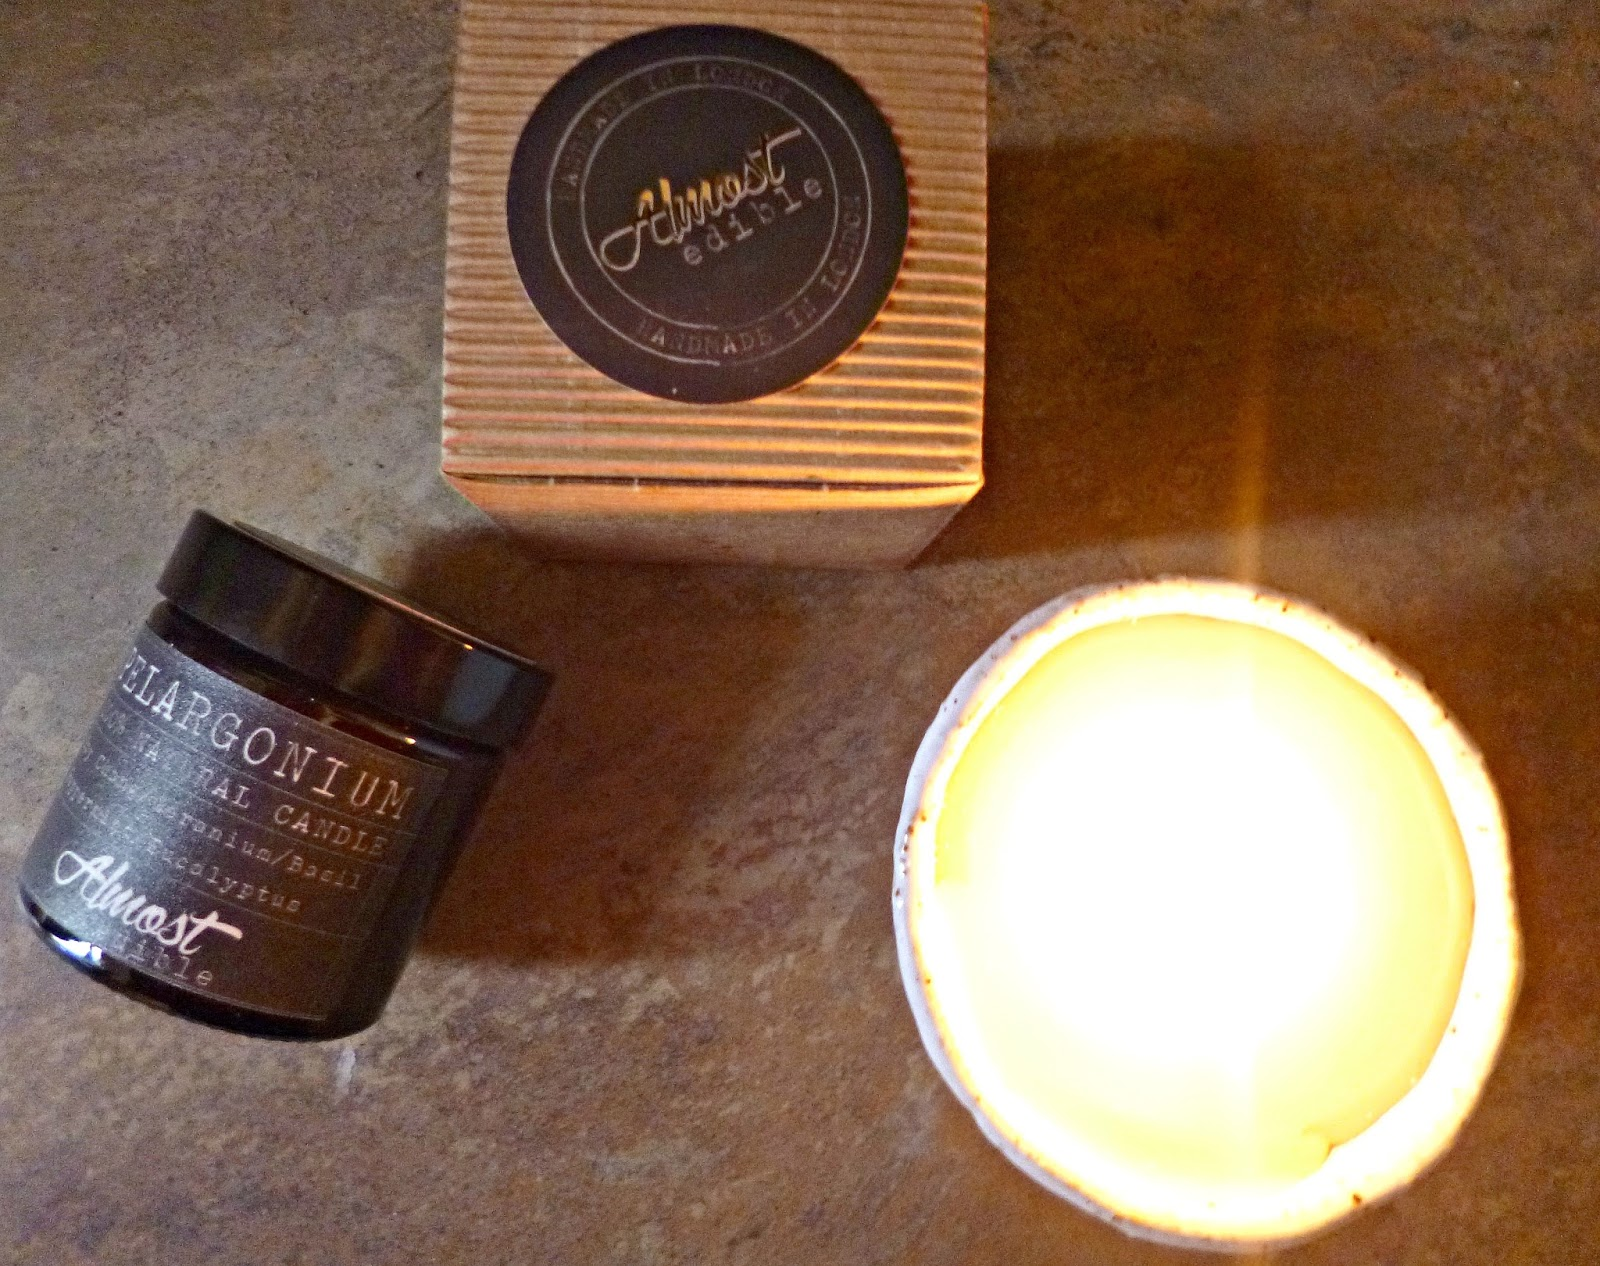 Artisan candles from Almost Edible